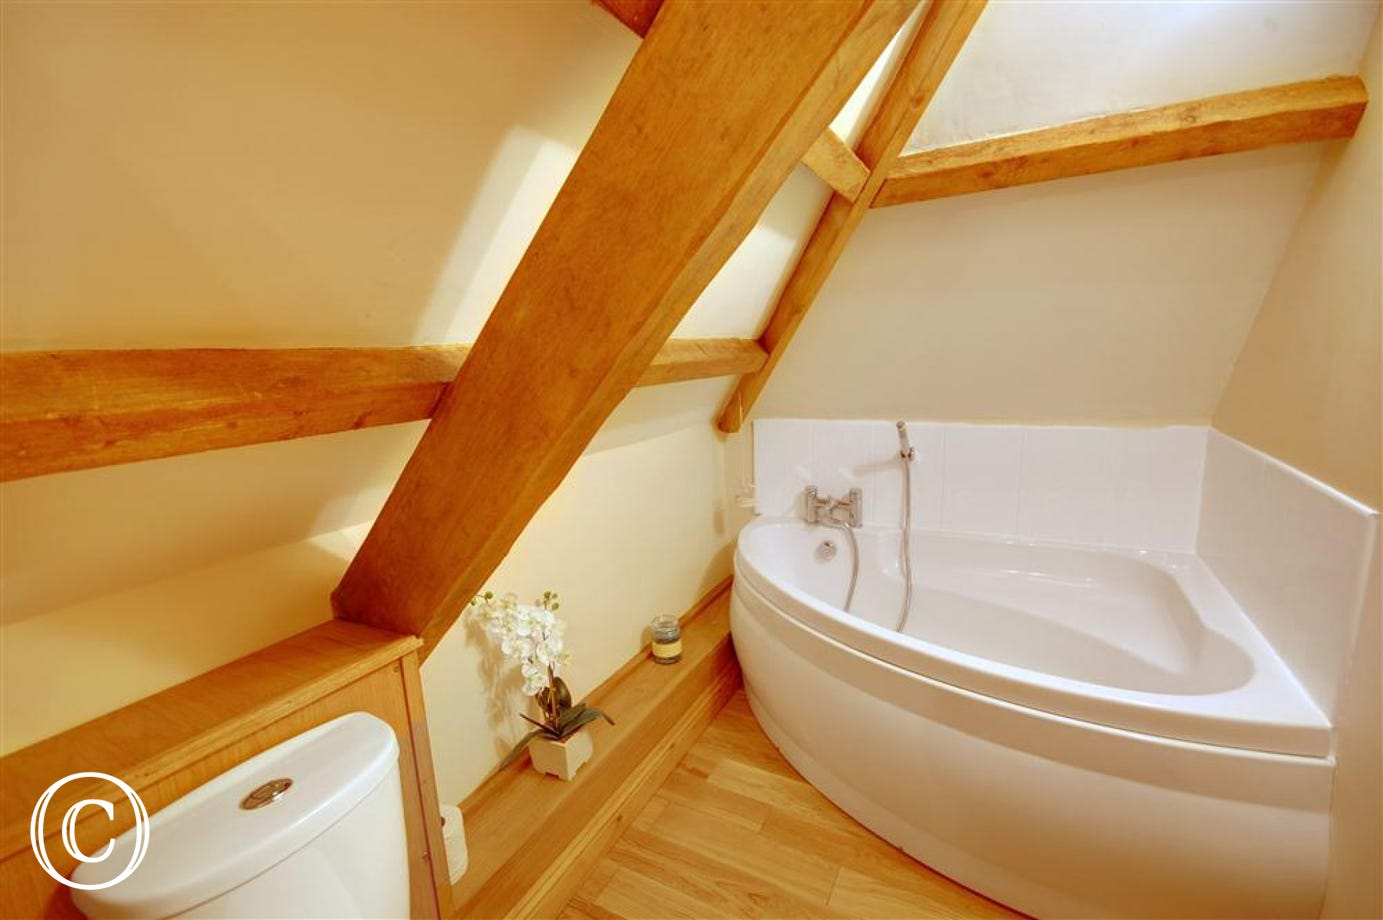 The en-suite has a corner bath and separate walk in shower